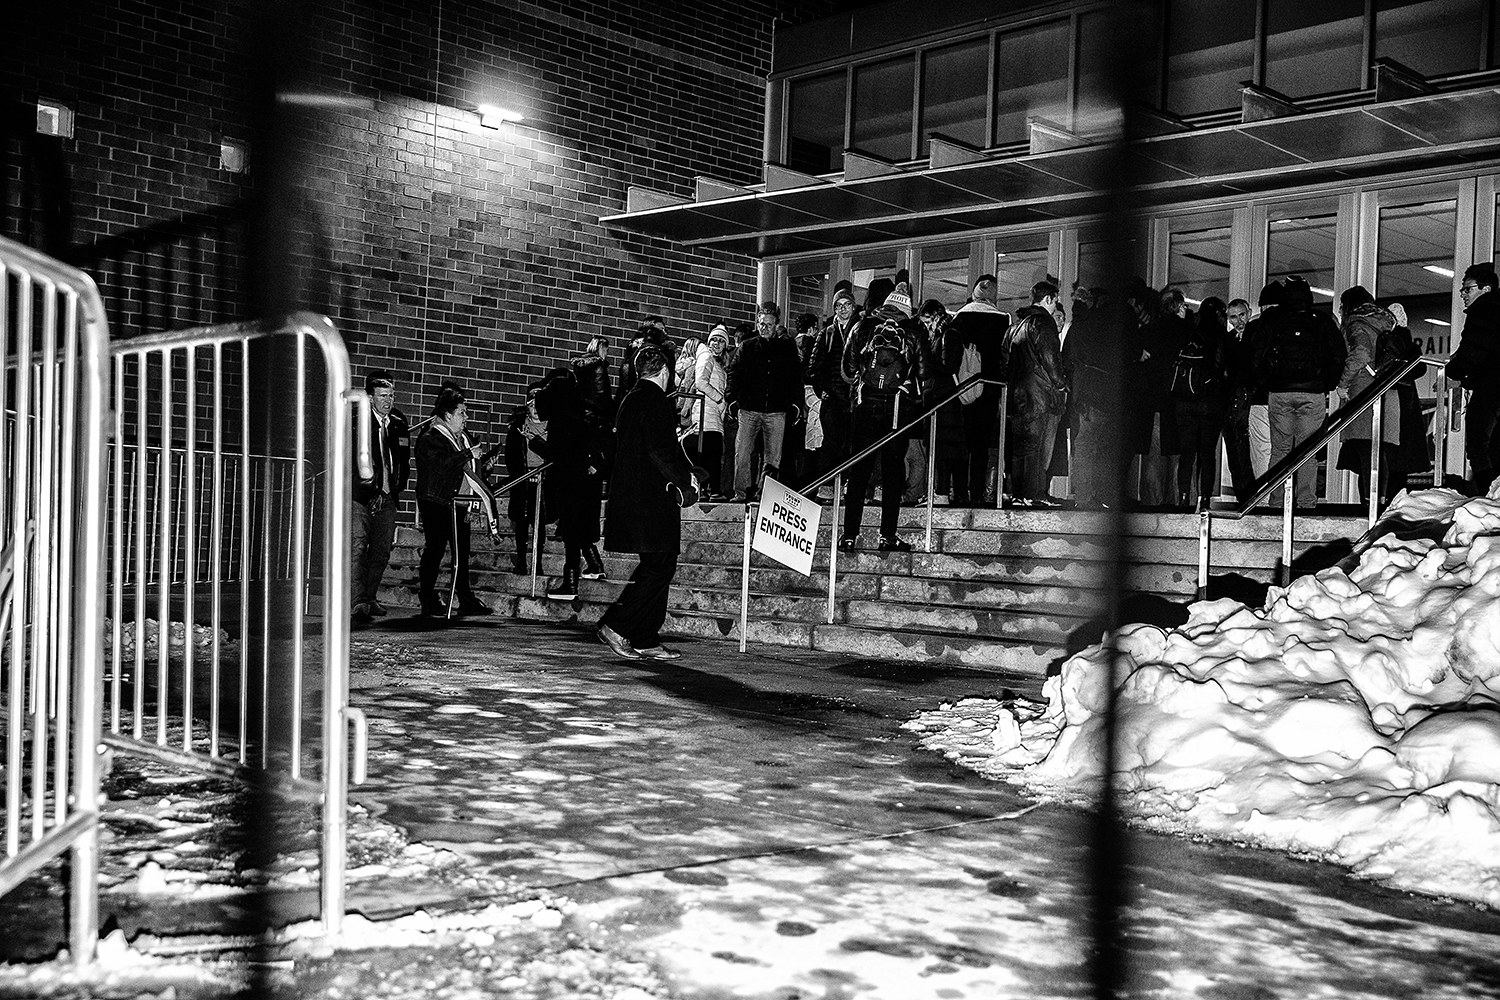 Media members stand outside the press entrance for a rally for President Donald Trump at the Knapp Center on Thursday, January 30, 2020. Hundreds of individuals including supporters, protestors, and members of the press were left outside after the event reached maximum capacity.